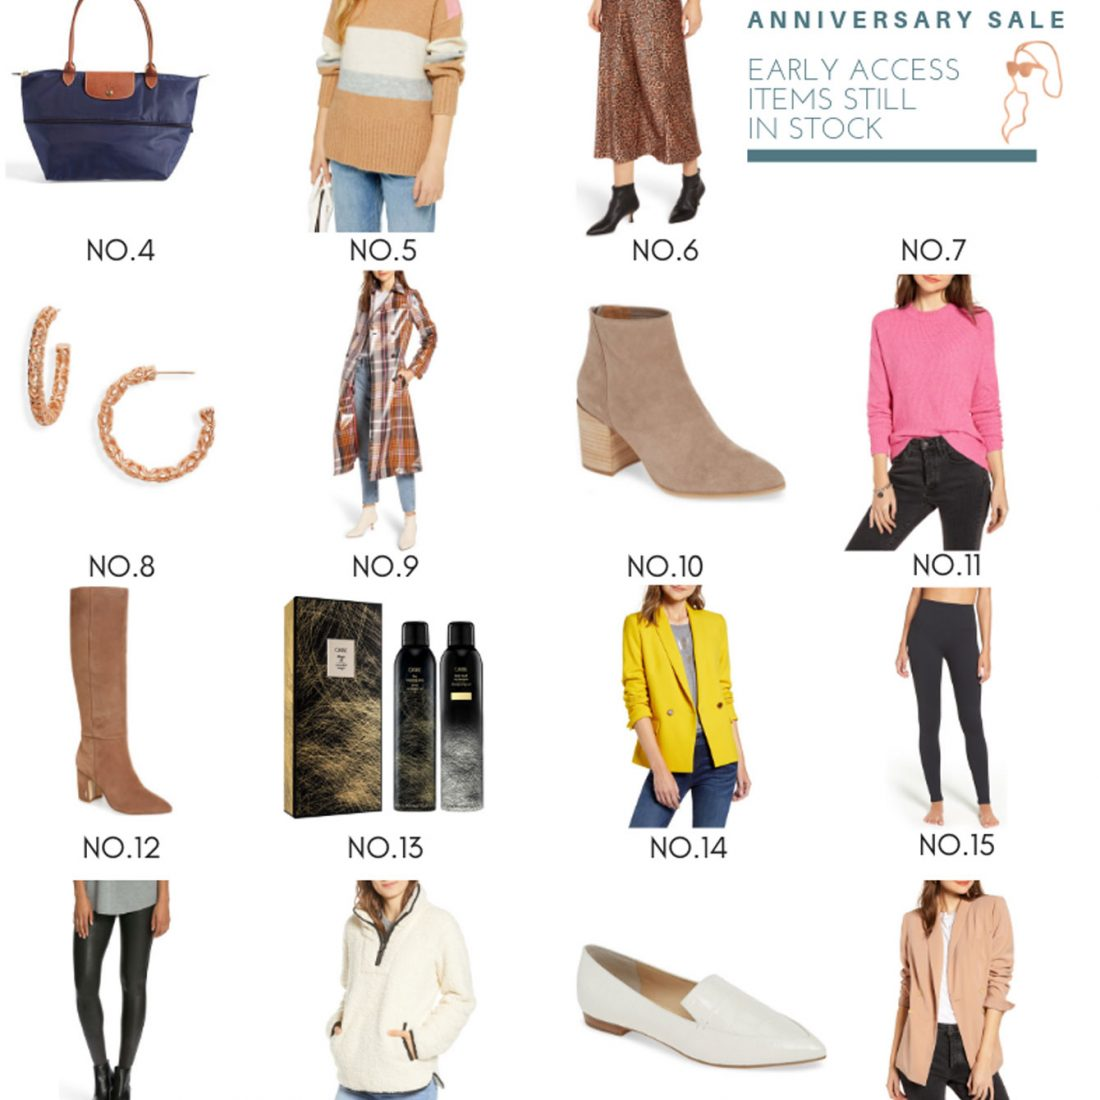 Nordstrom Anniversary Sale Public Access Best Items